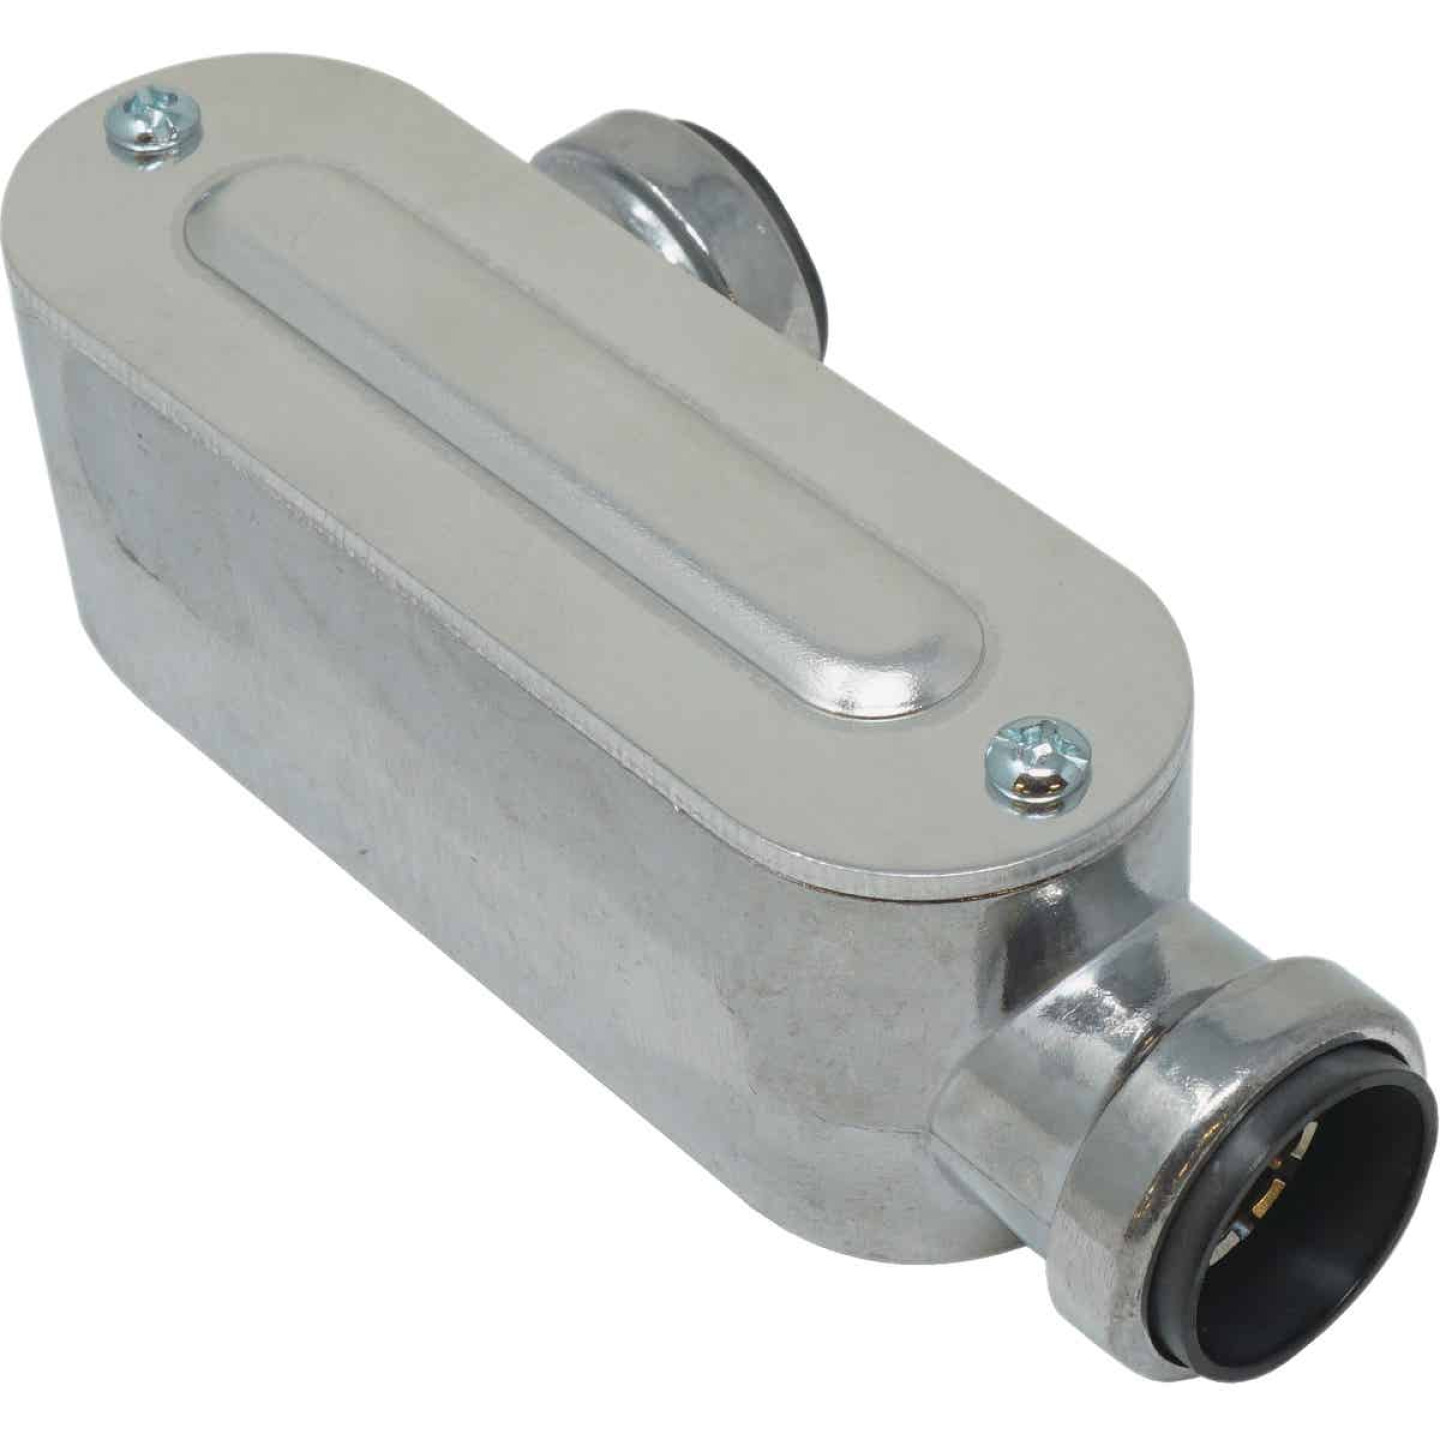 Southwire SimPush 3/4 In. EMT Push-To-Install Type-LL Conduit Body Image 1